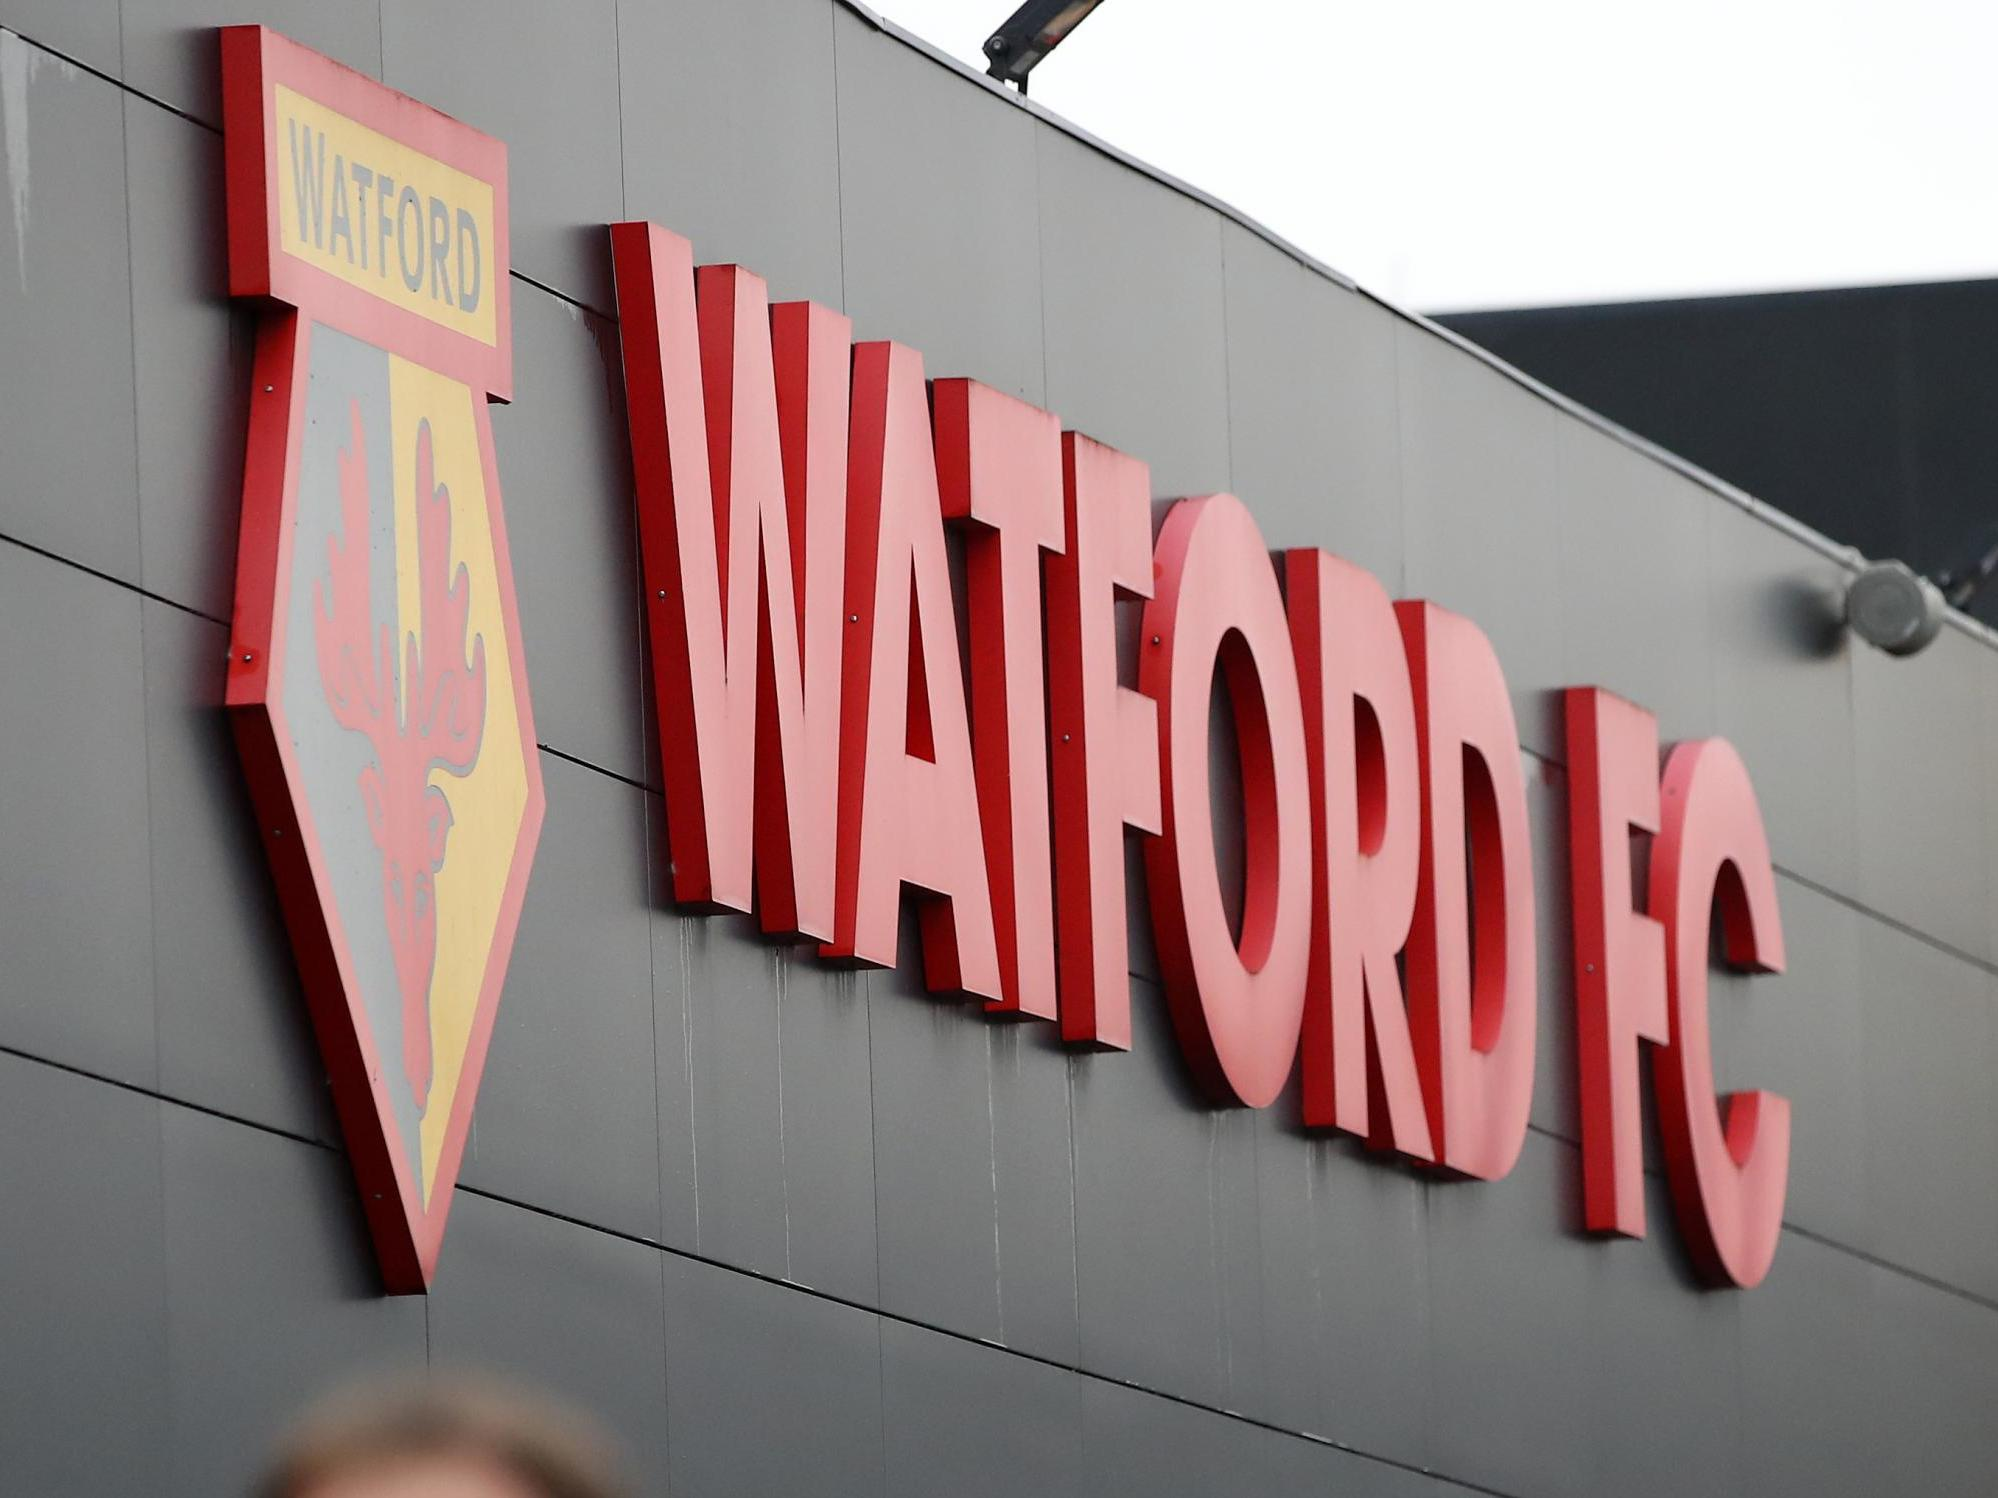 Two more Watford players in self-isolation after family members test positive for coronavirus